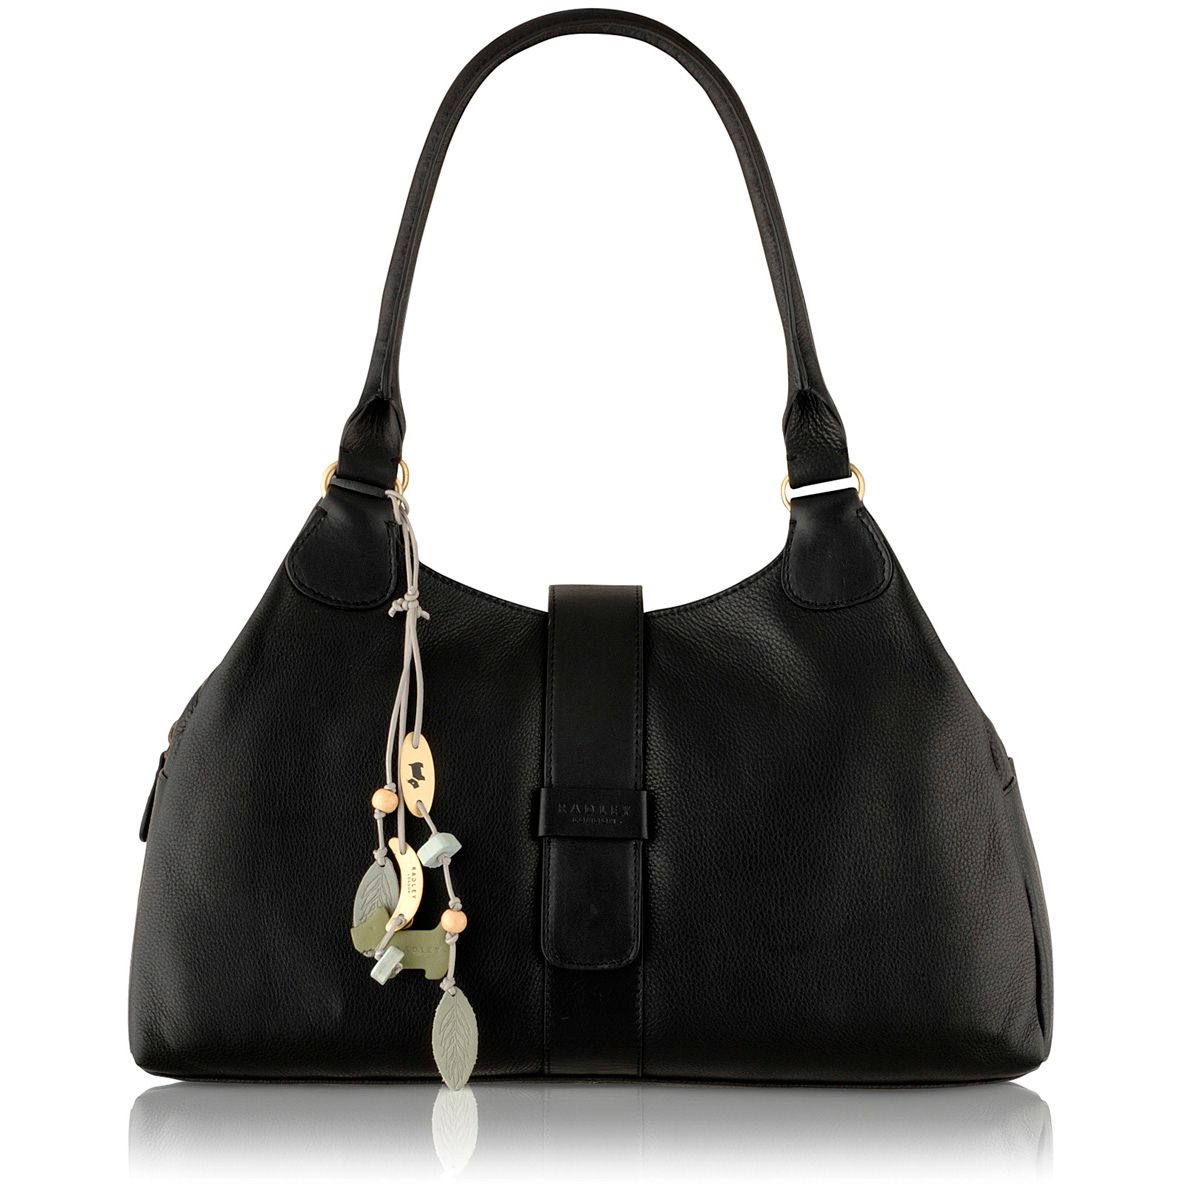 Danby black large leather ziptop tote bag